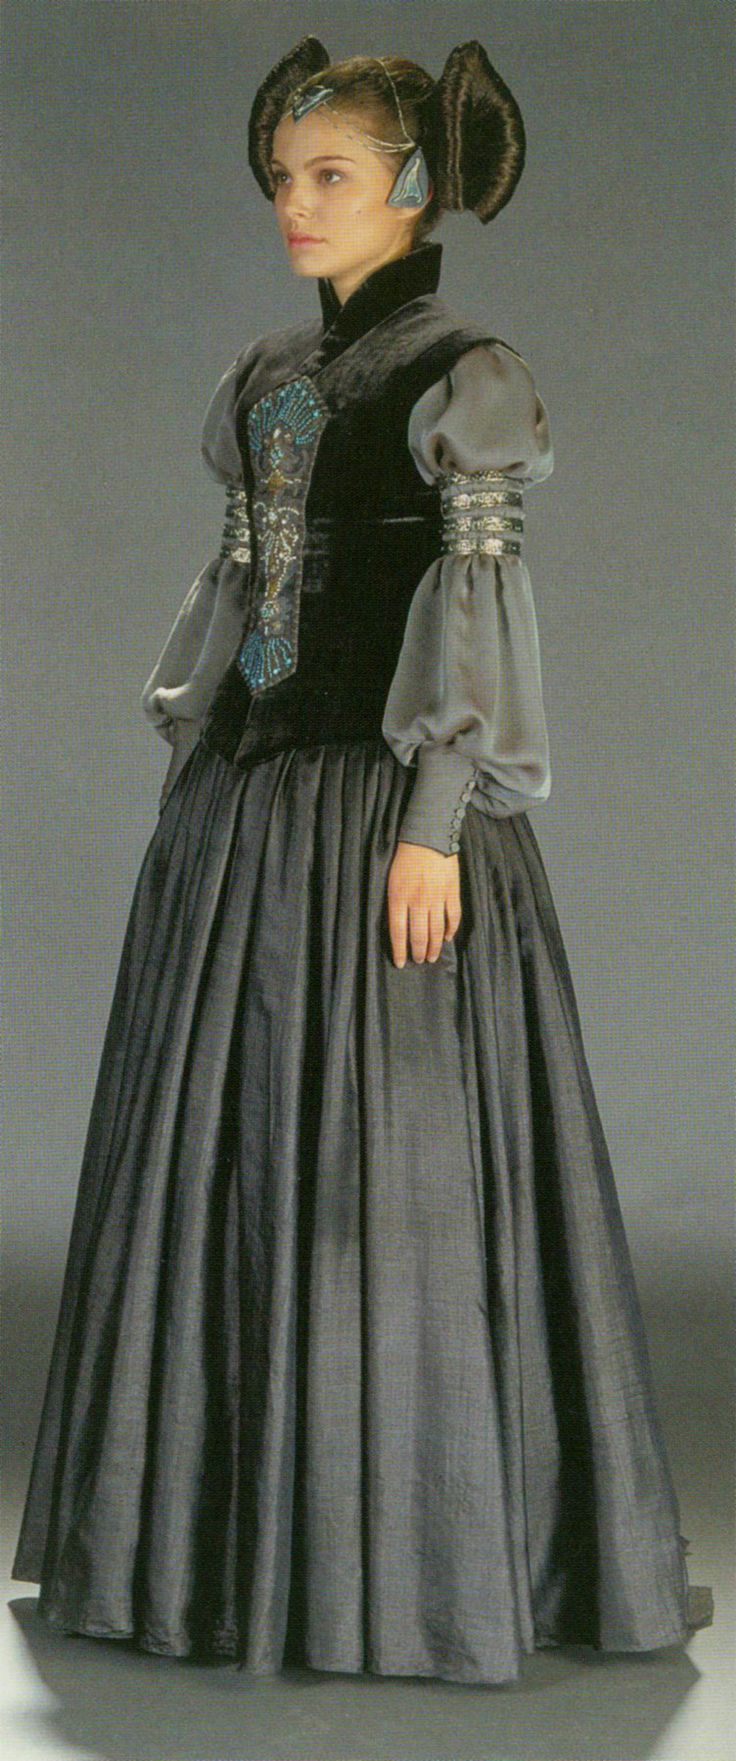 Padme - packing gown from Star Wars Episode II